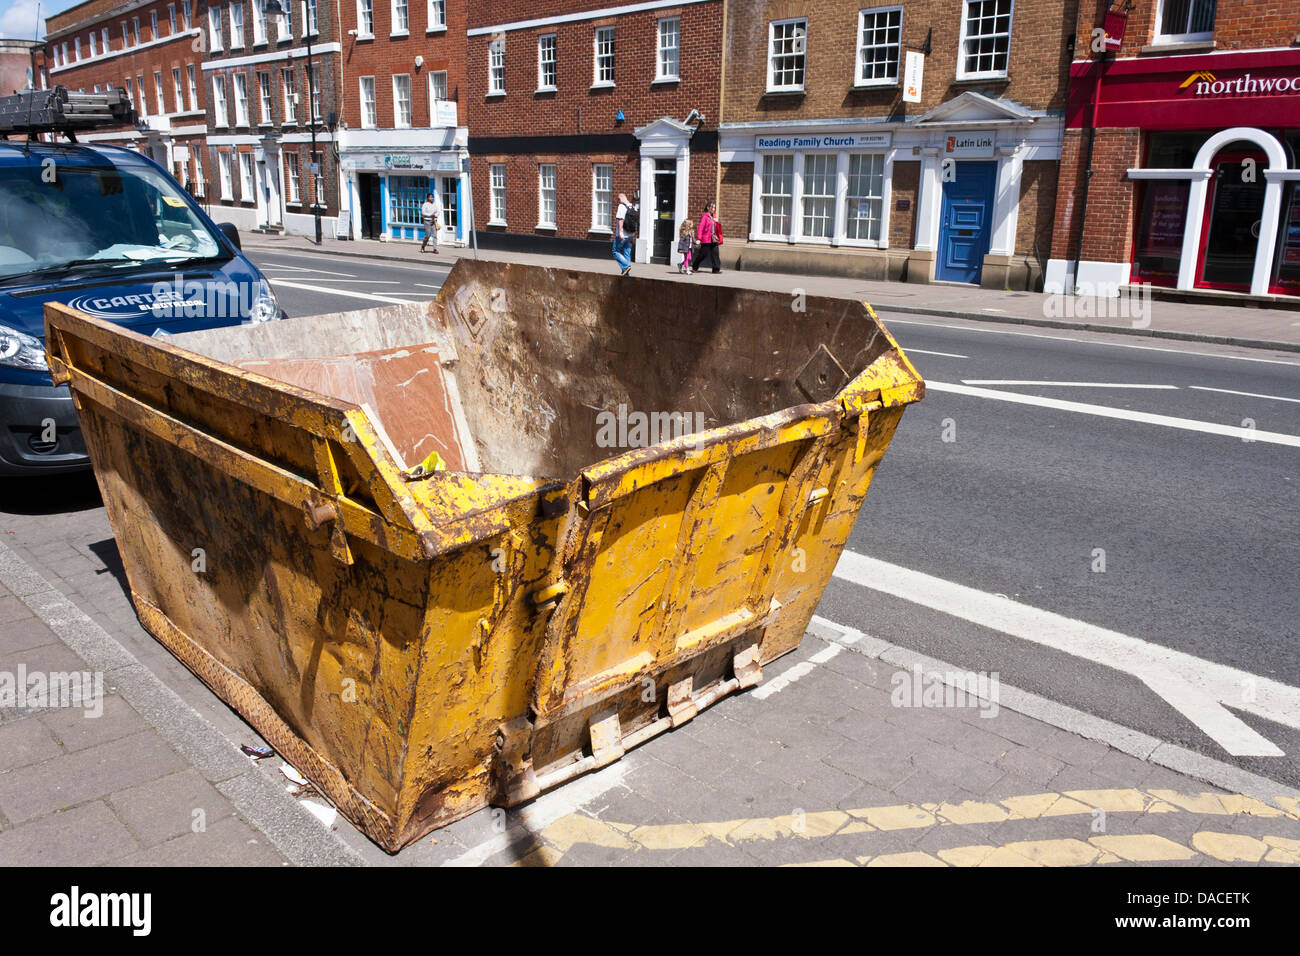 Builders skip on street ready to be filled with waste. Reading, Berkshire, England, GB, UK Stock Photo